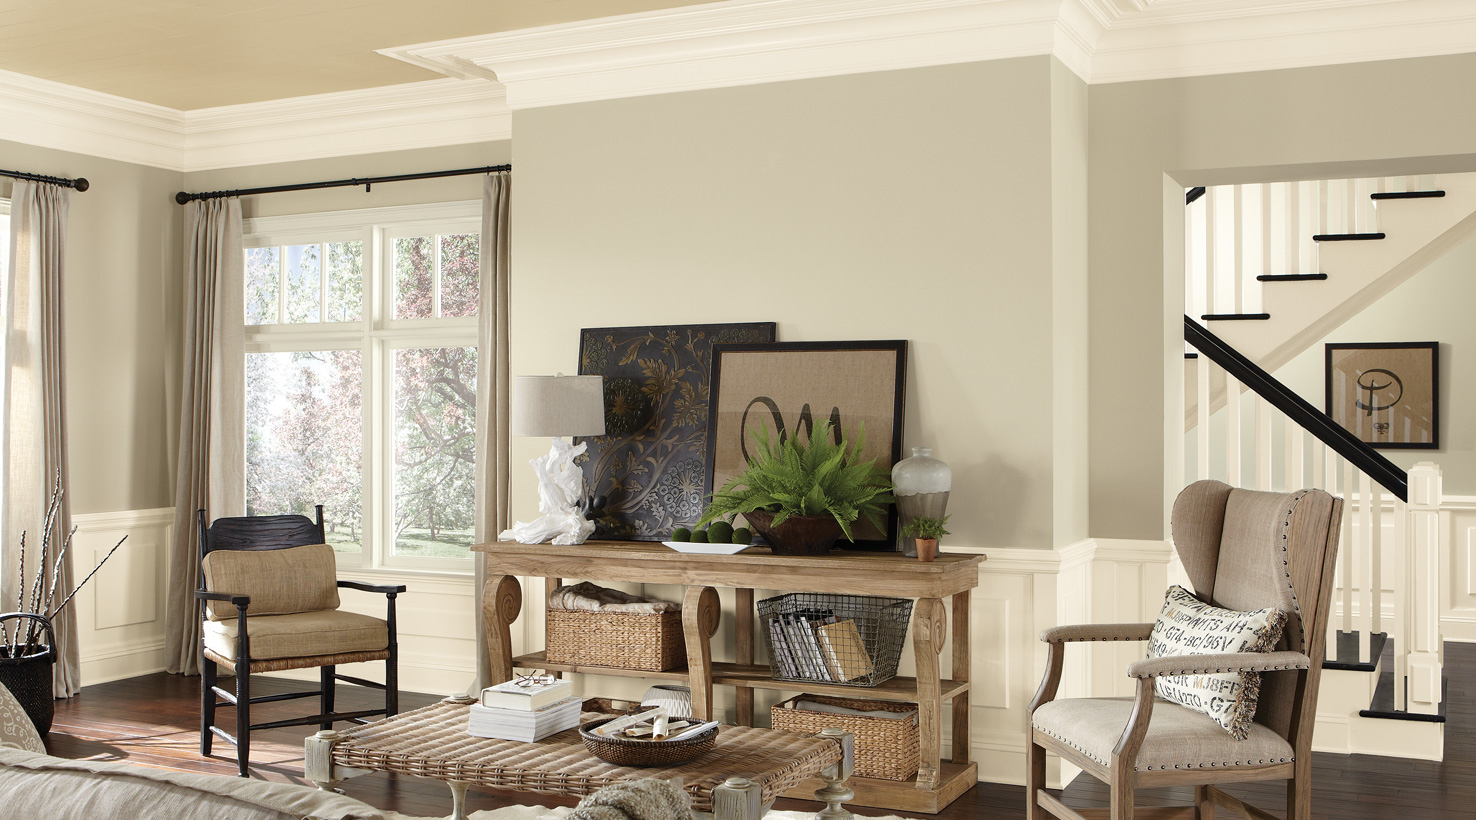 Fabulous Living Room Paint Color Ideas | Inspiration Gallery | Sherwin-Williams regarding Good Living Room Colors